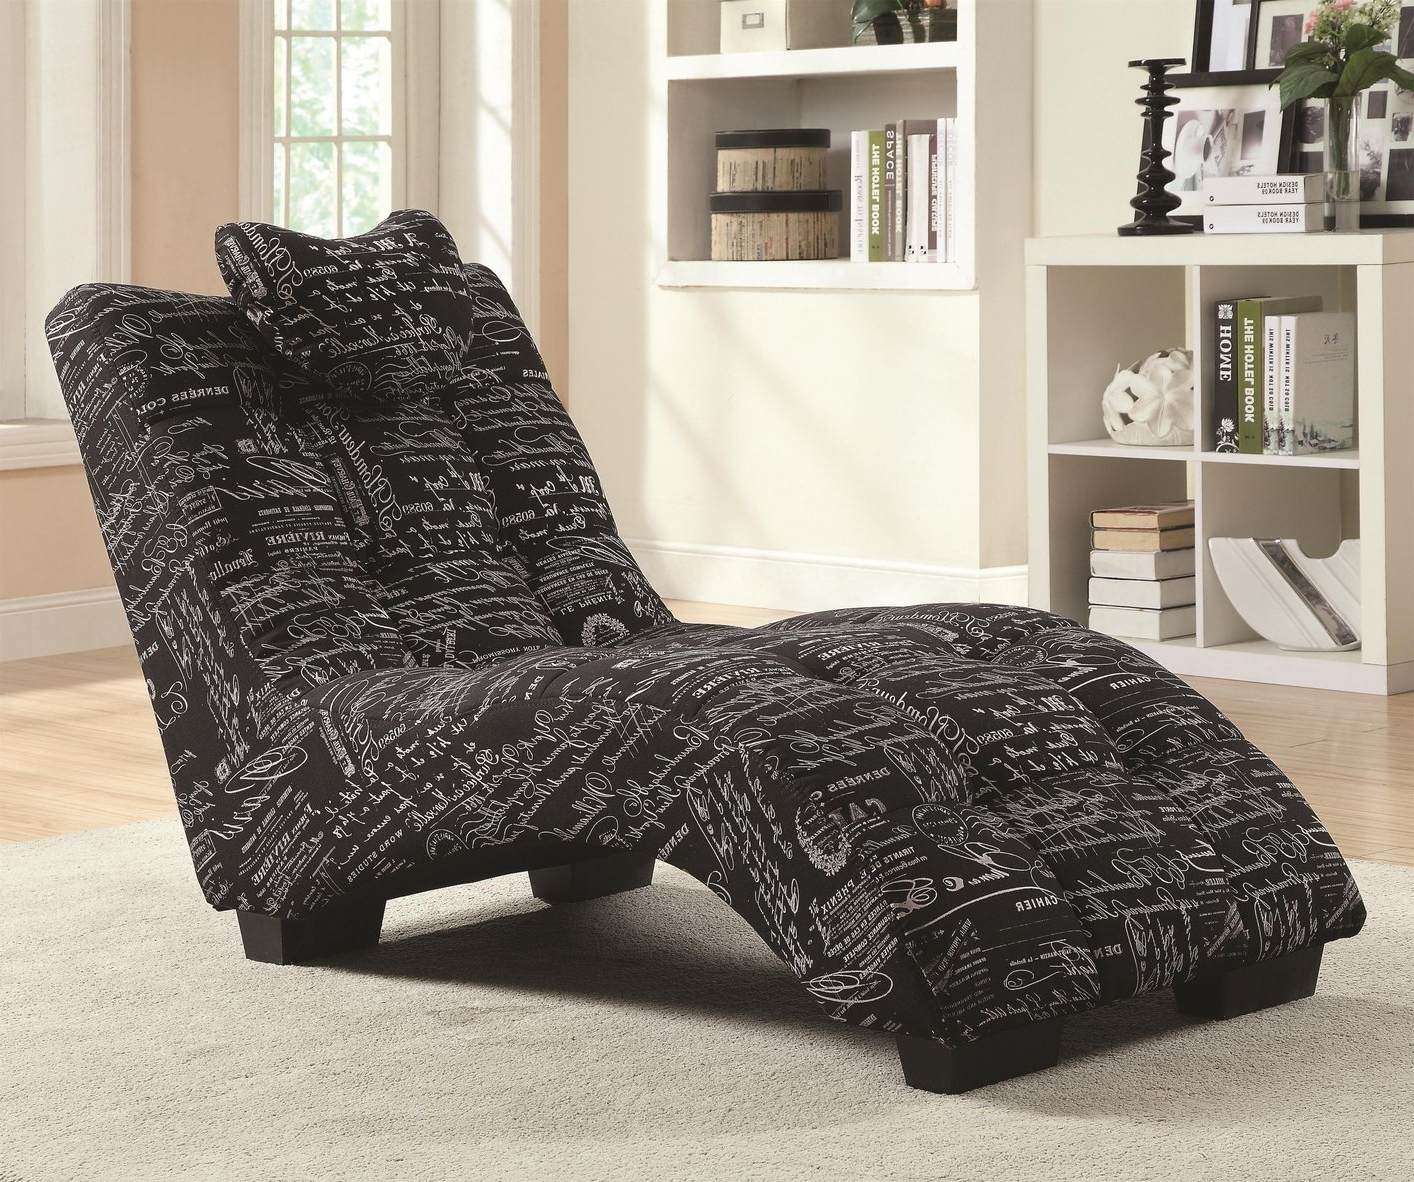 Fabric Chaise Lounge Chairs Within Most Popular Black Fabric Chaise Lounge – Steal A Sofa Furniture Outlet Los (View 3 of 15)